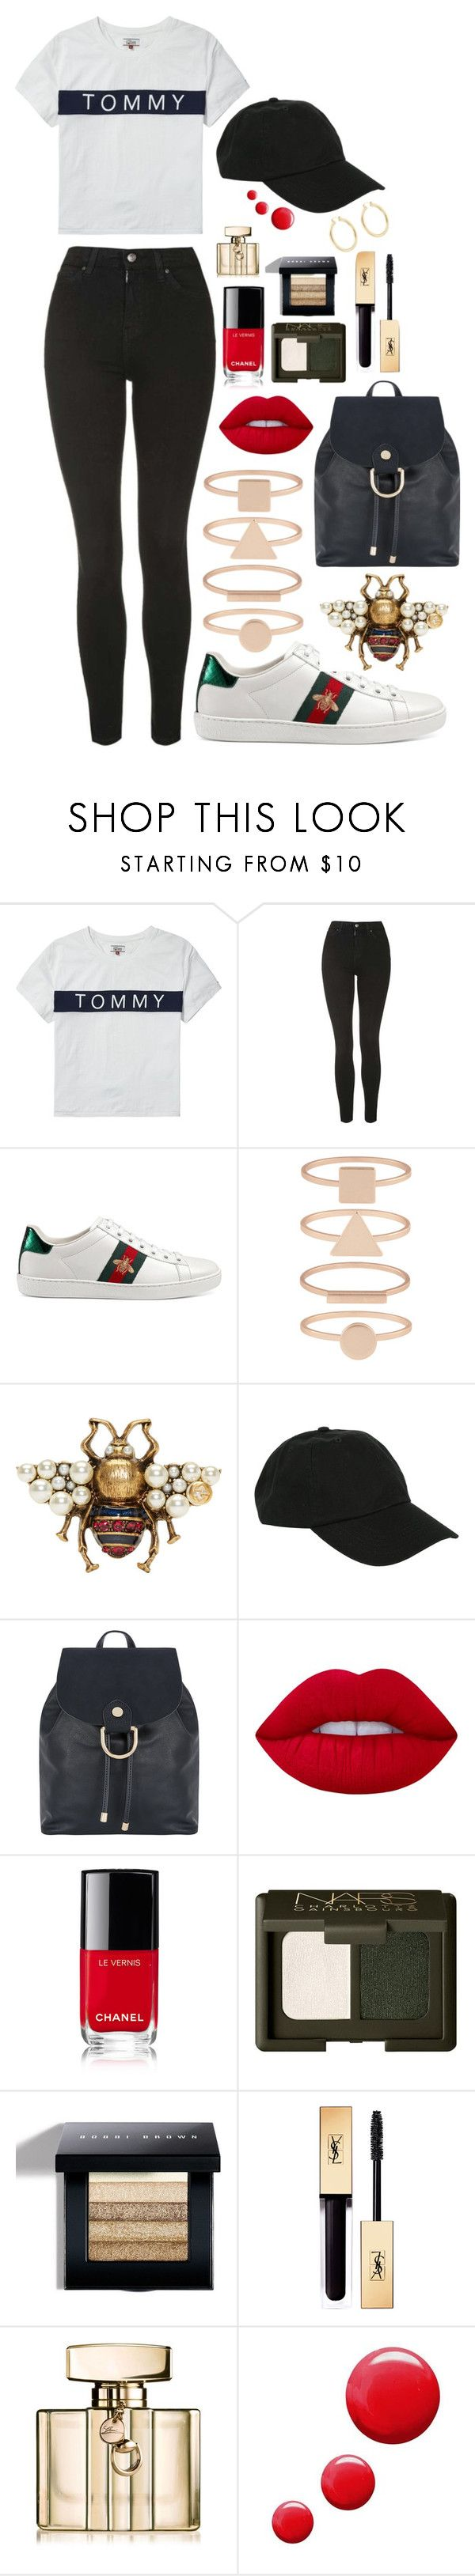 """""""Untitled #57"""" by rupinderkjawanda ❤ liked on Polyvore featuring Tommy Hilfiger, Topshop, Gucci, Accessorize, Hot Topic, Monsoon, Lime Crime, Chanel, Bobbi Brown Cosmetics and Isabel Marant"""